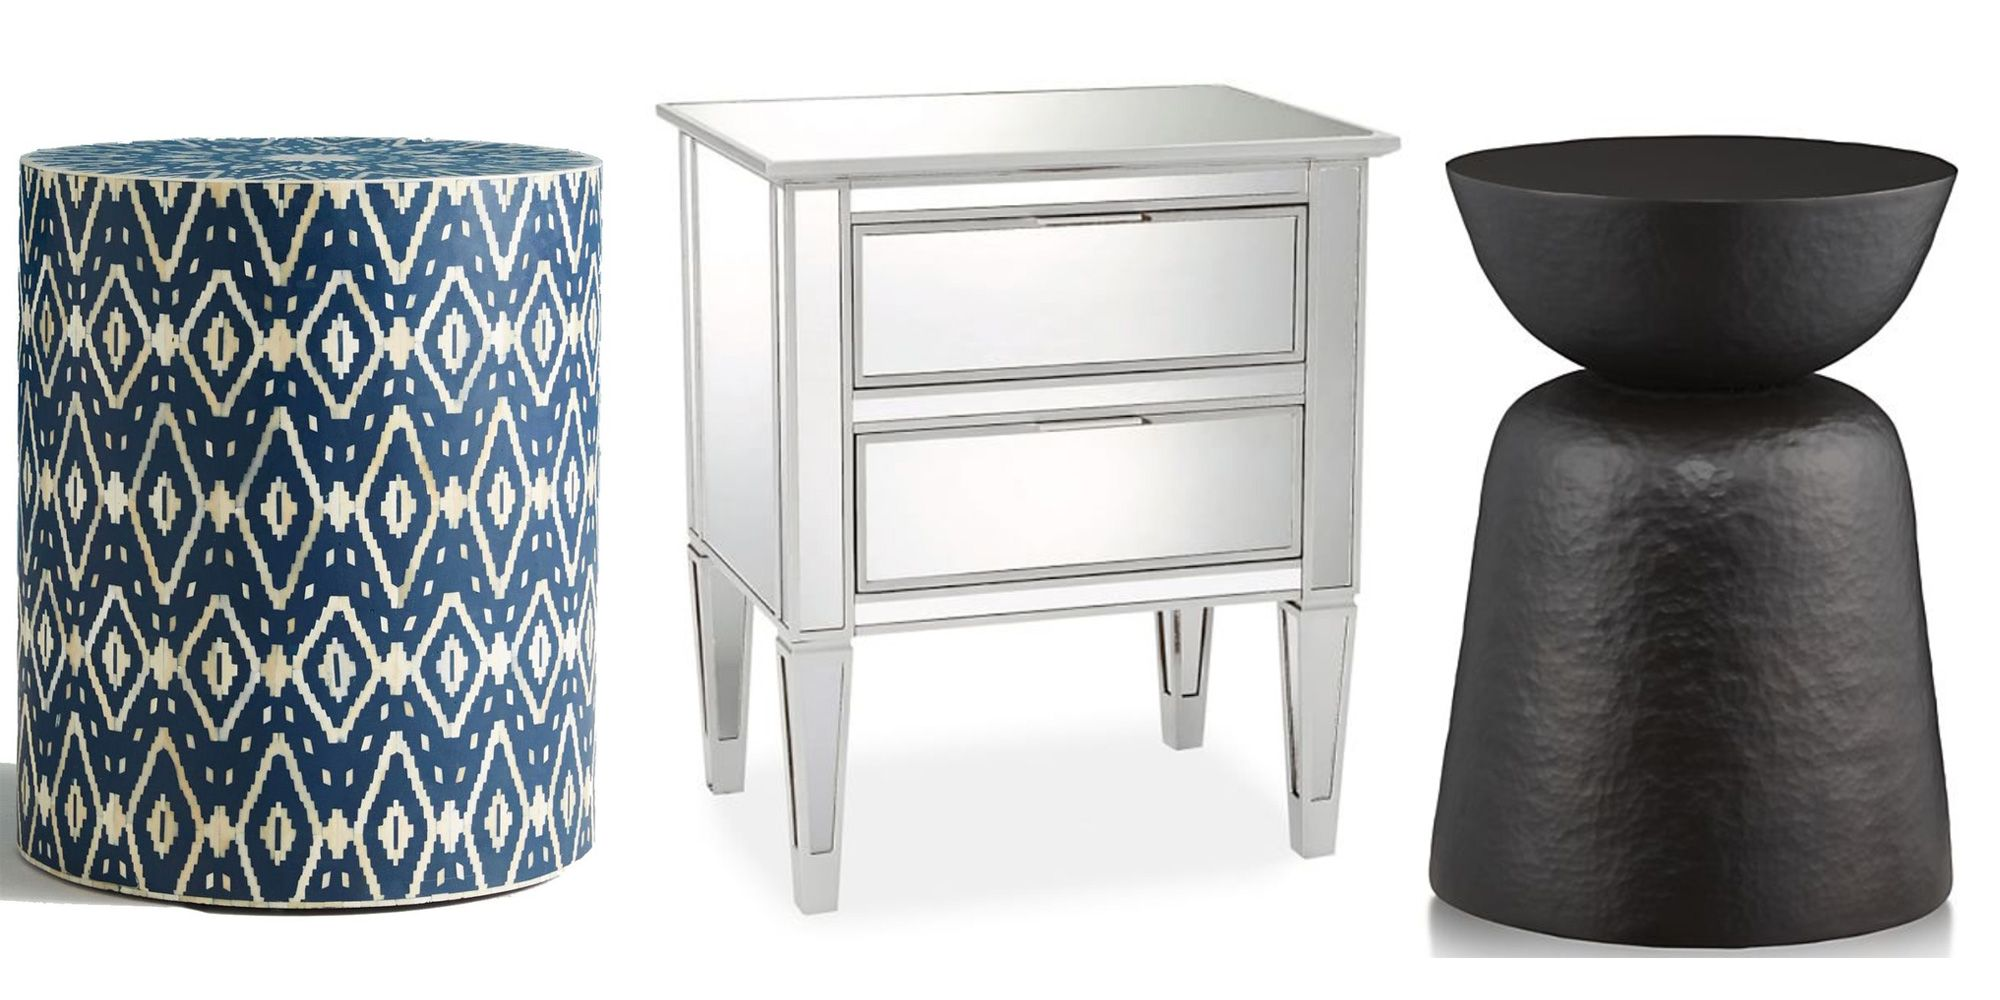 19 of The Best Bedside Tables For Your Room